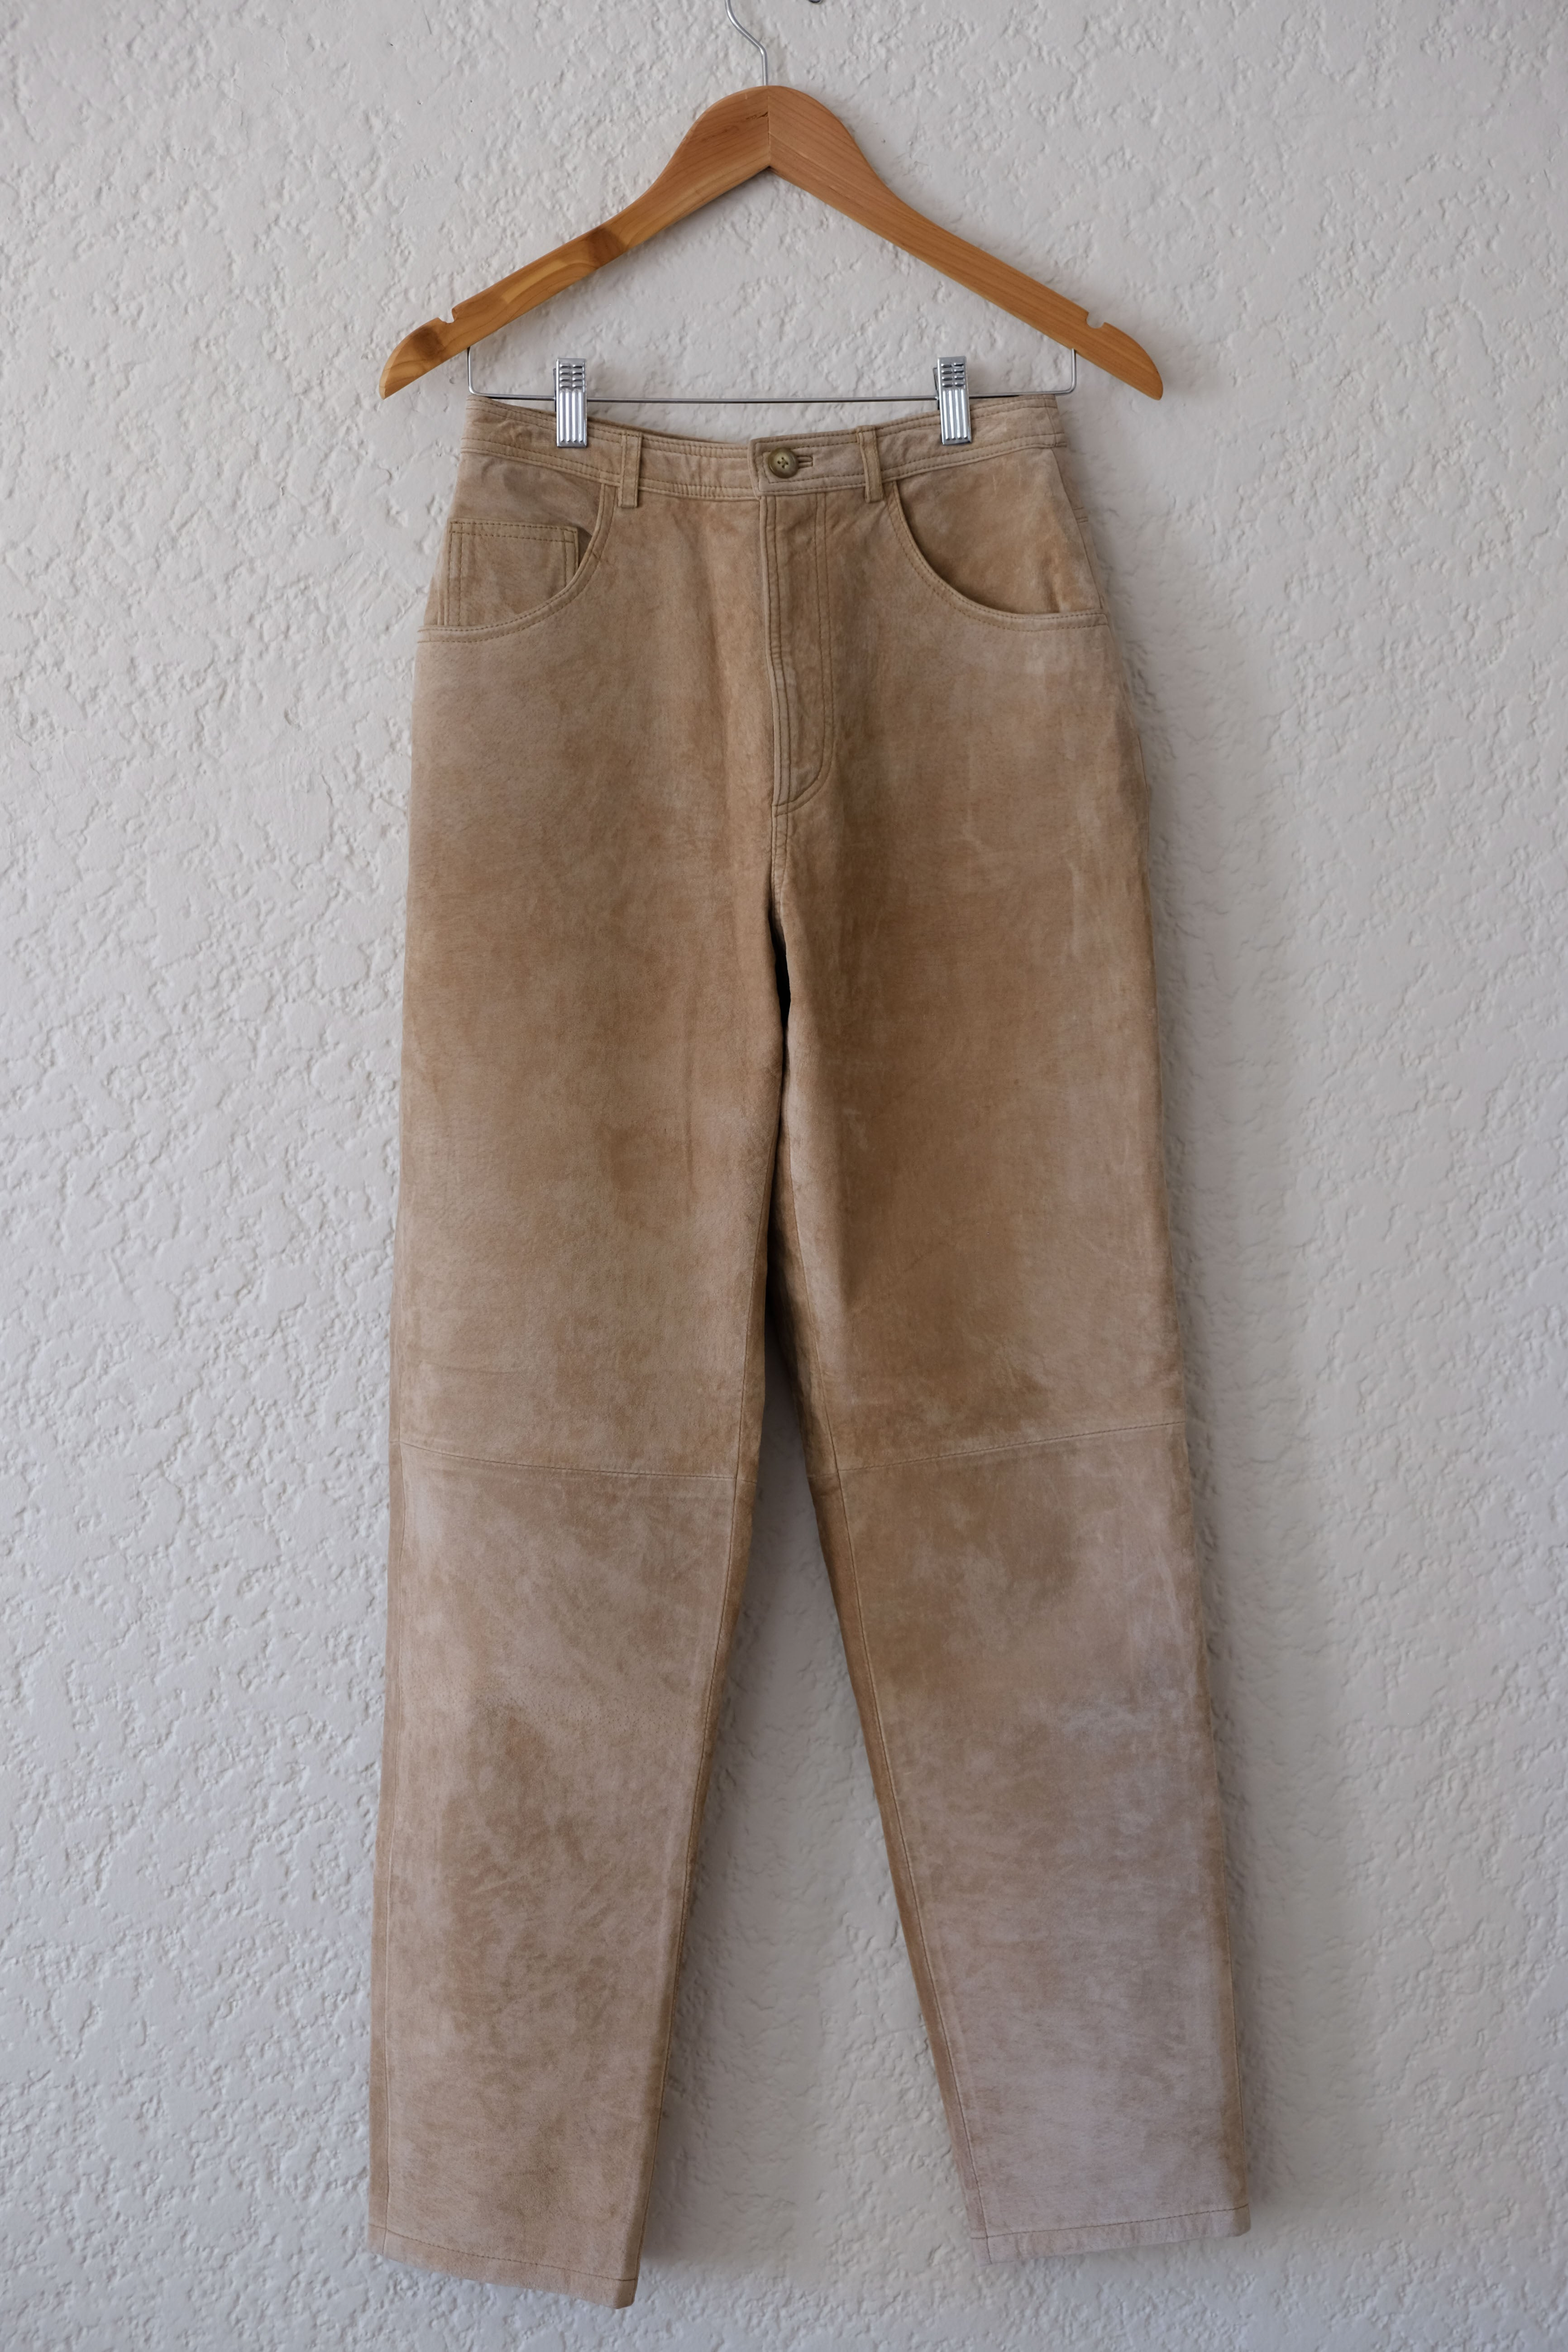 Suede High-Waisted Pants